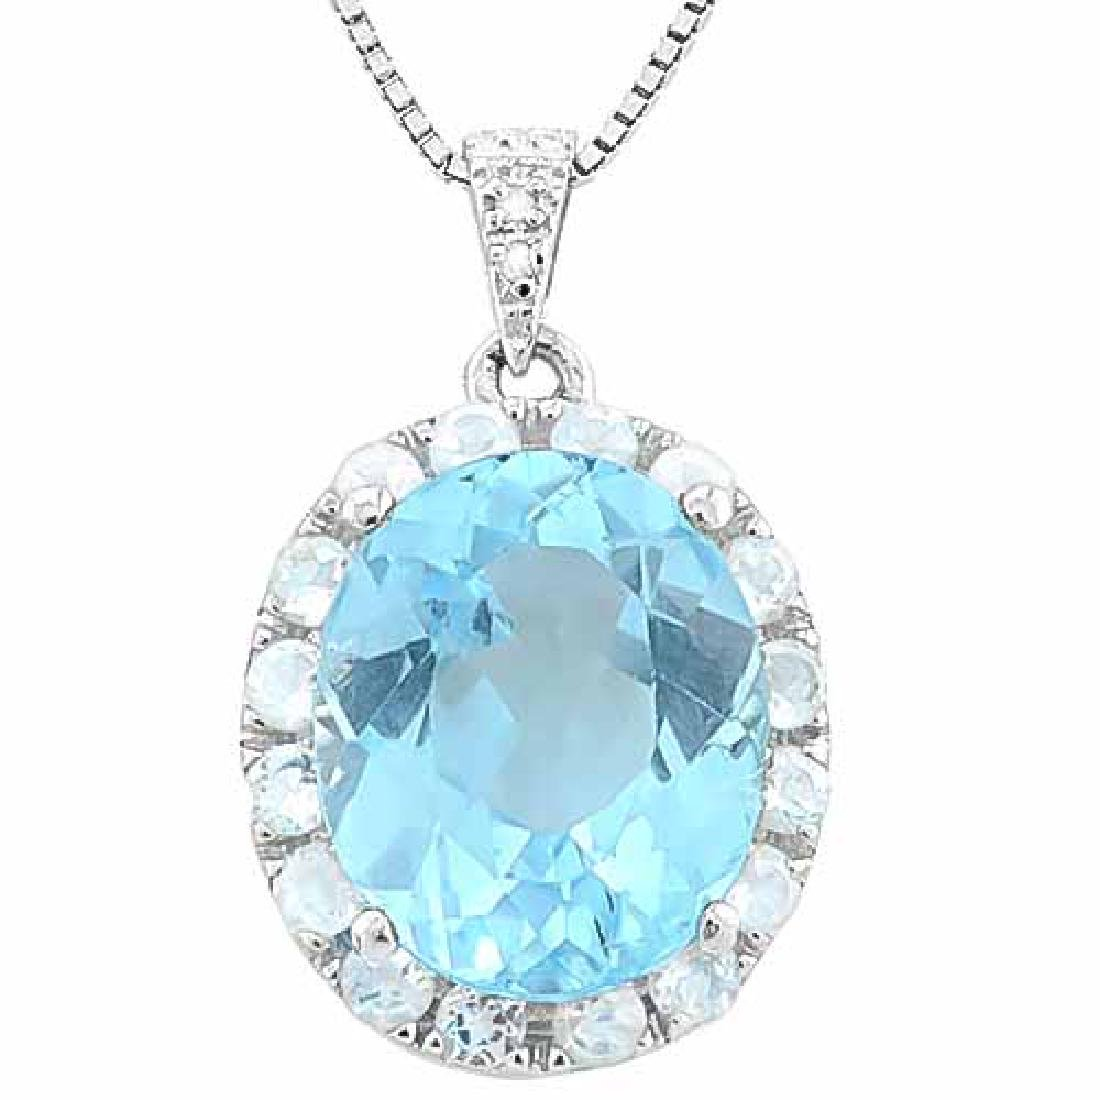 BABY SWISS BLUE TOPAZ & 11 1/5 CARAT (16 PCS) WHITE TOP